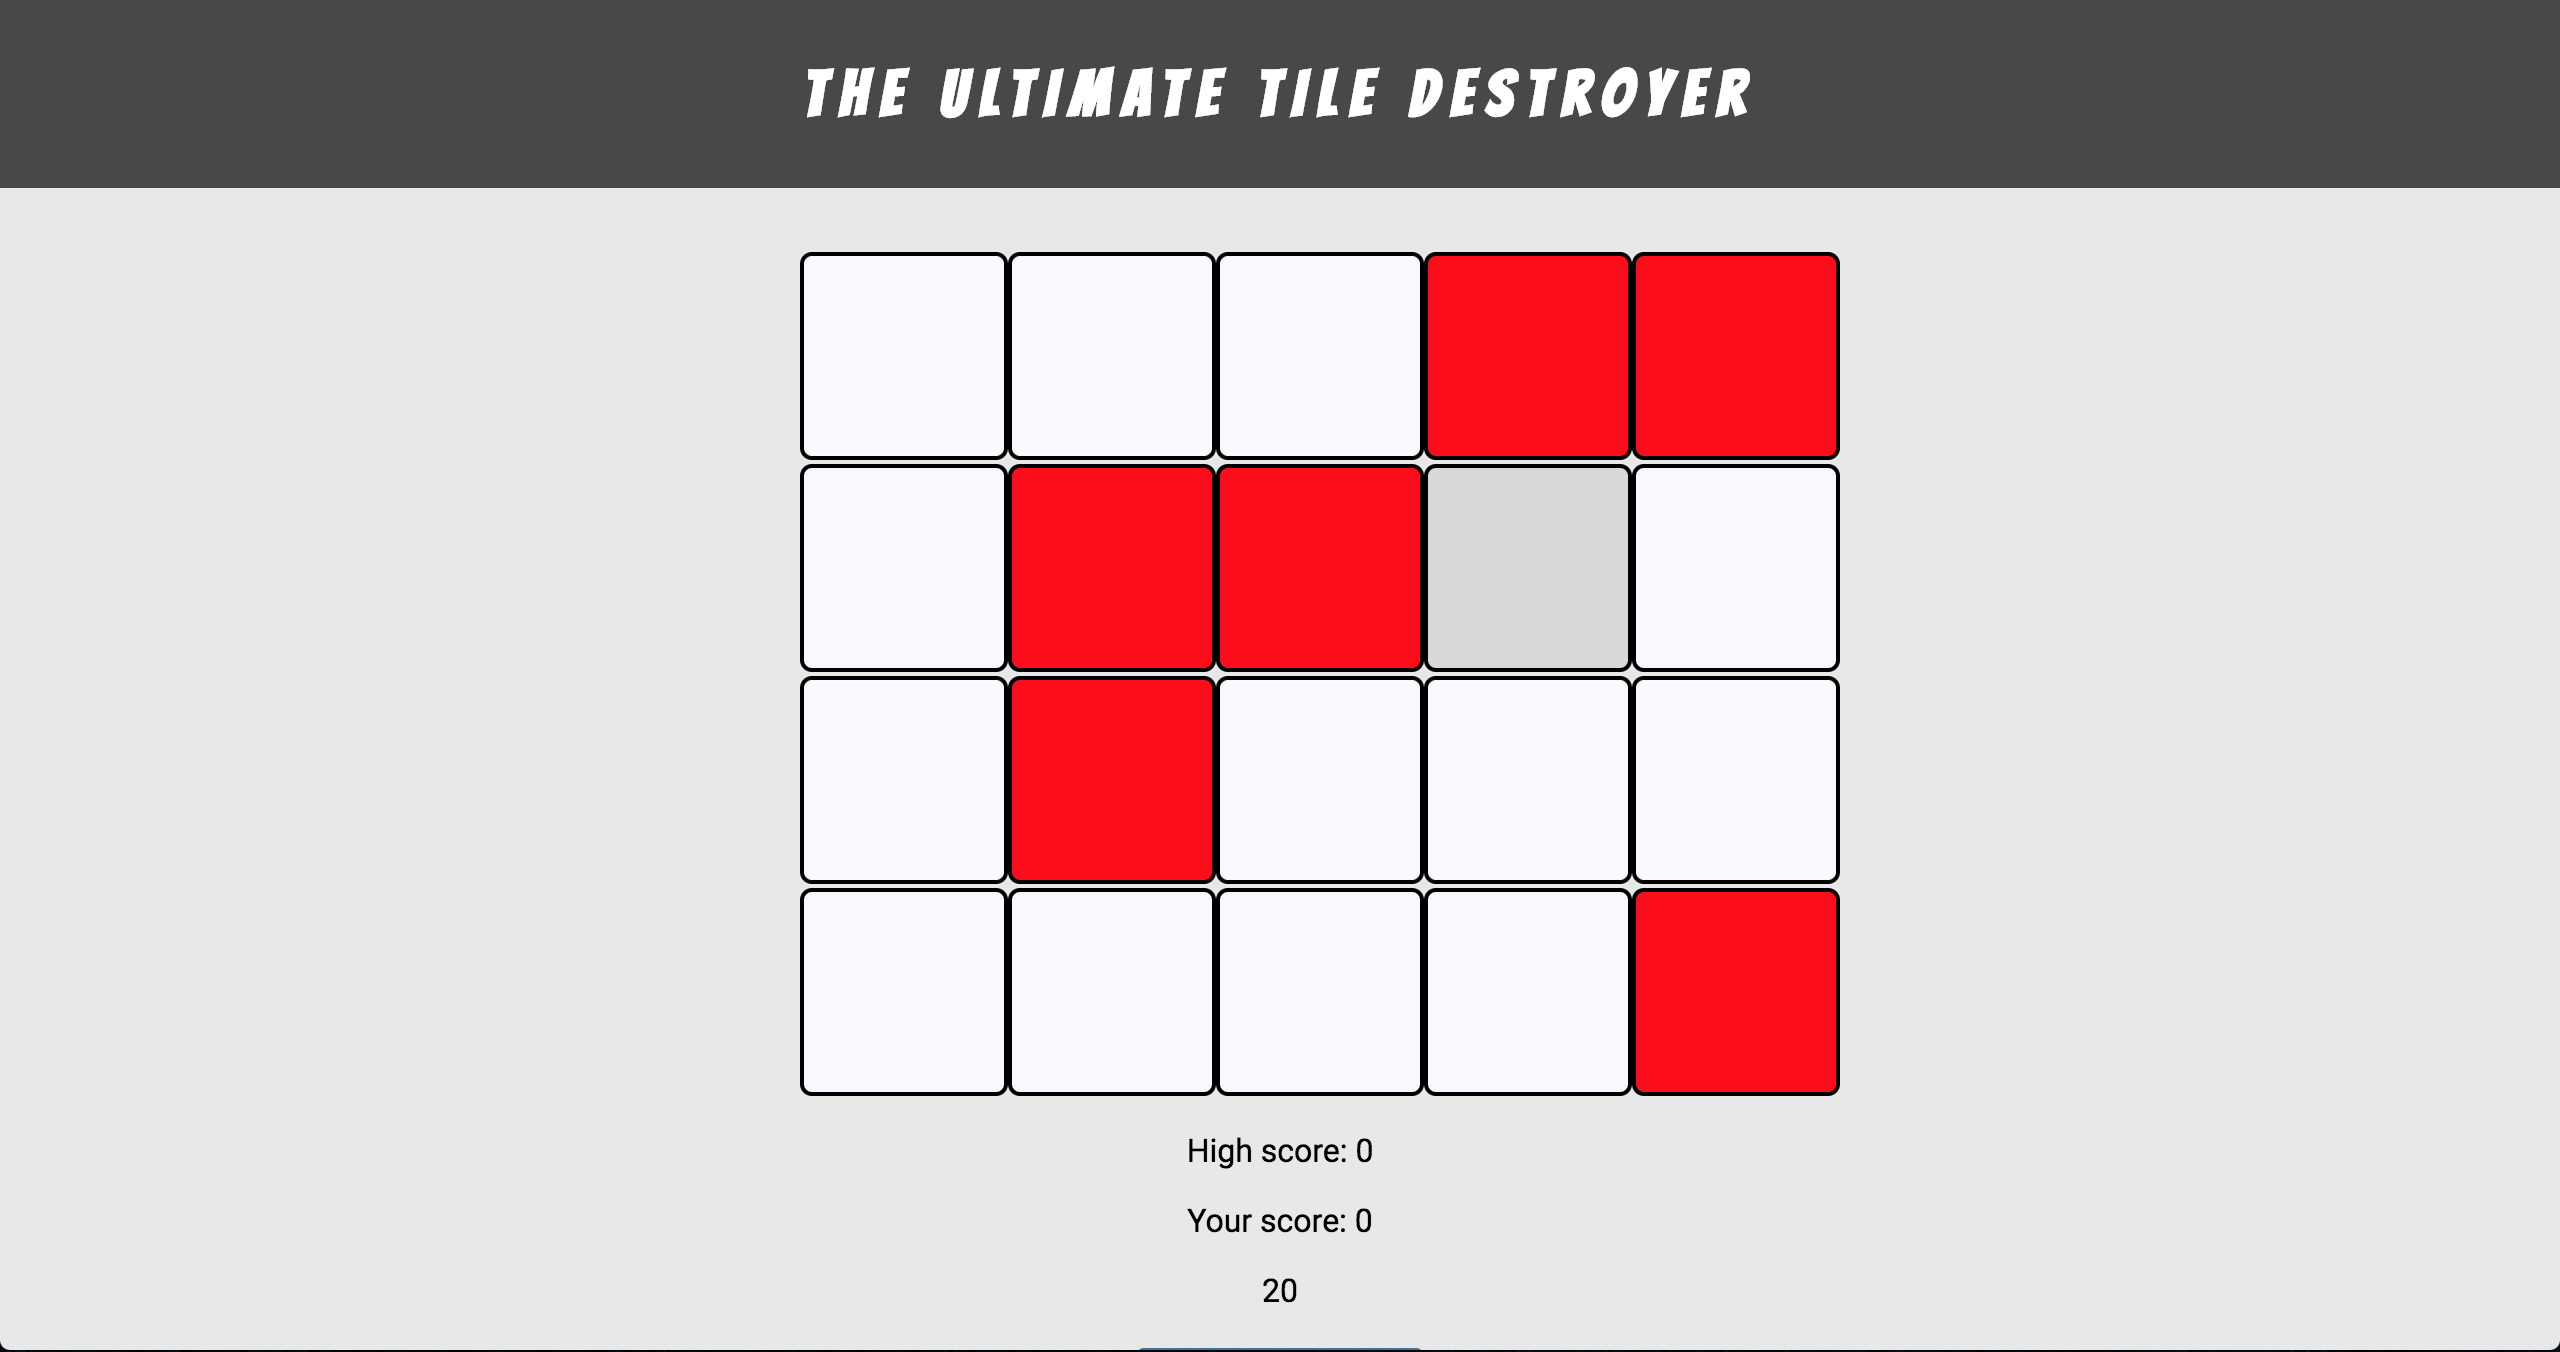 Click the red tiles